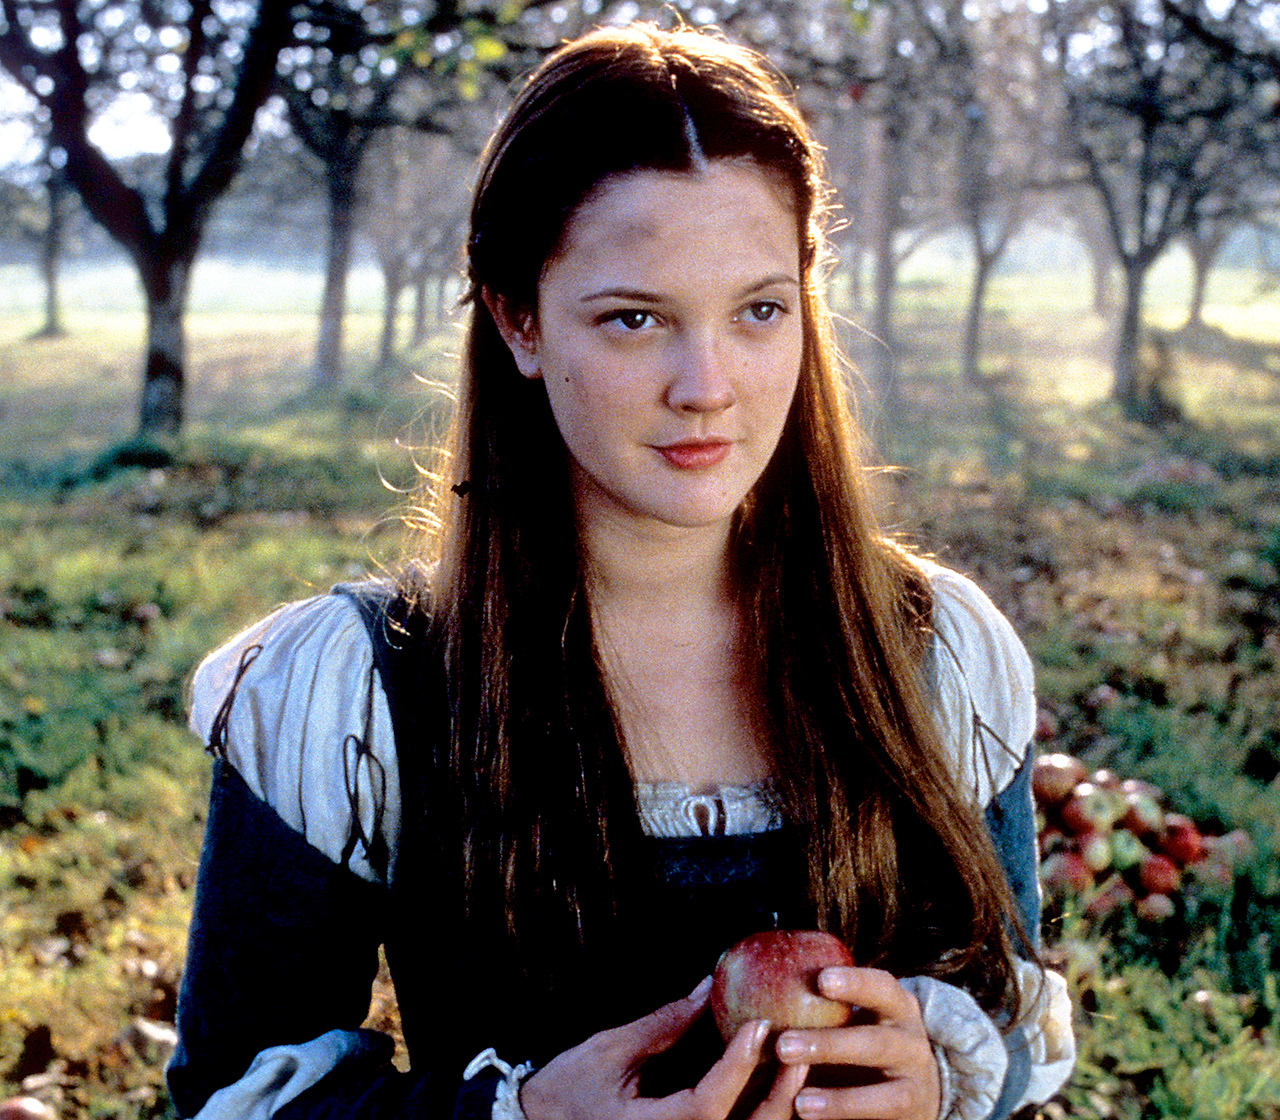 Inspired by Cinderella, 1998's Ever After saw Barrymore playing the lead role of Danielle de Barbarac — the kind daughter of a wealthy windower who is enslaved as a servant by her wicked stepmother.